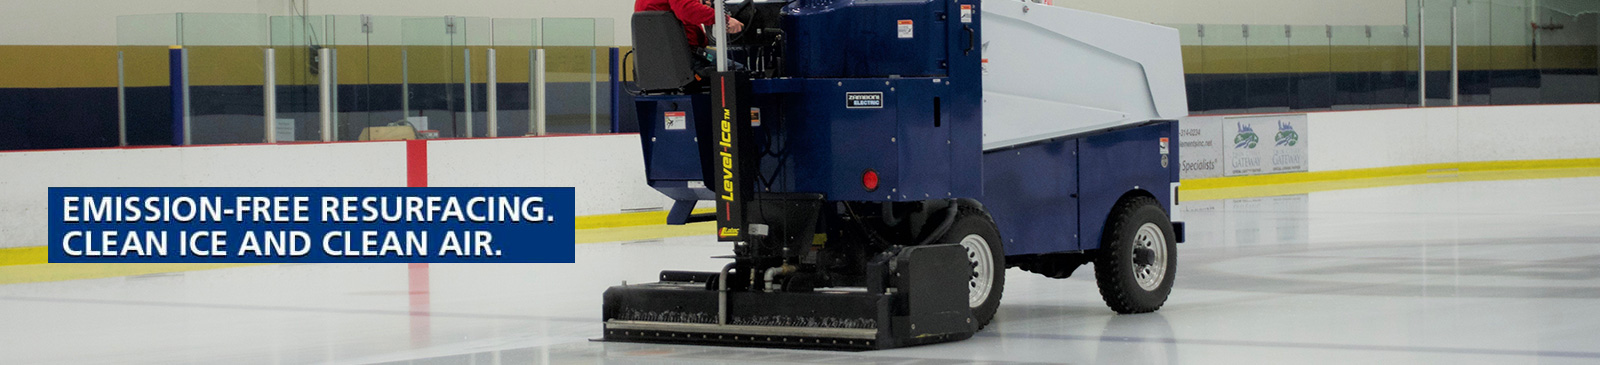 Emission-free resurfacing. Clean ice and clean air.